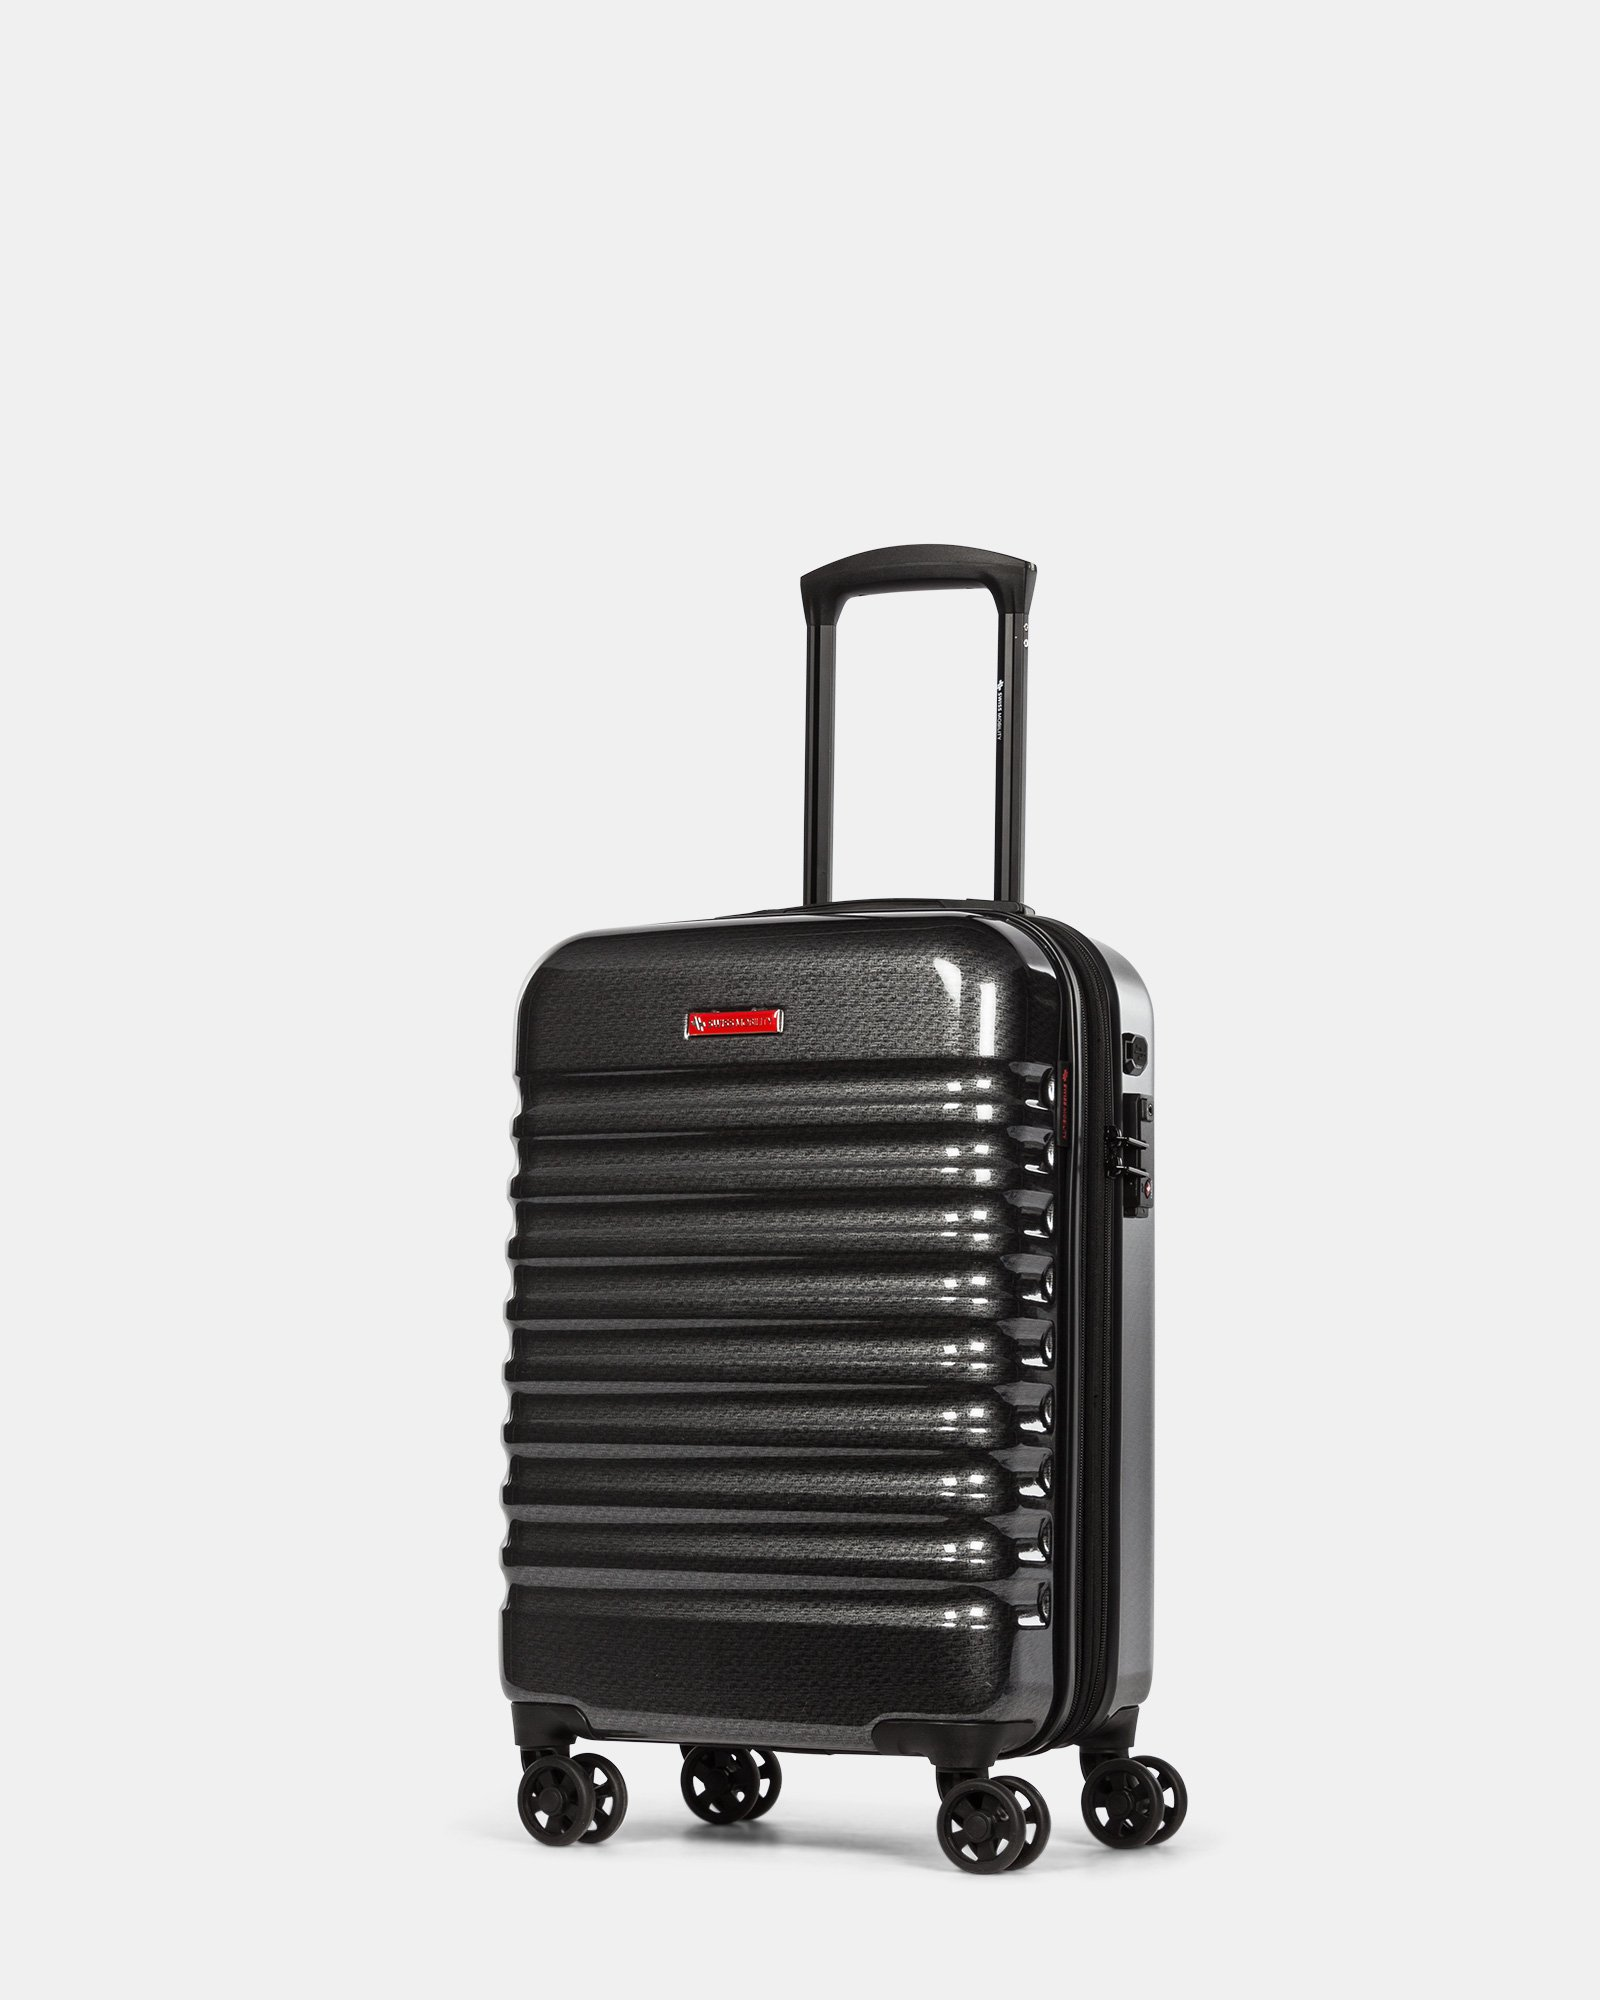 Stratus – Hardside Carry-On Luggage with TSA lock & Integrated USB port - Charcoal - Swiss Mobility - Zoom